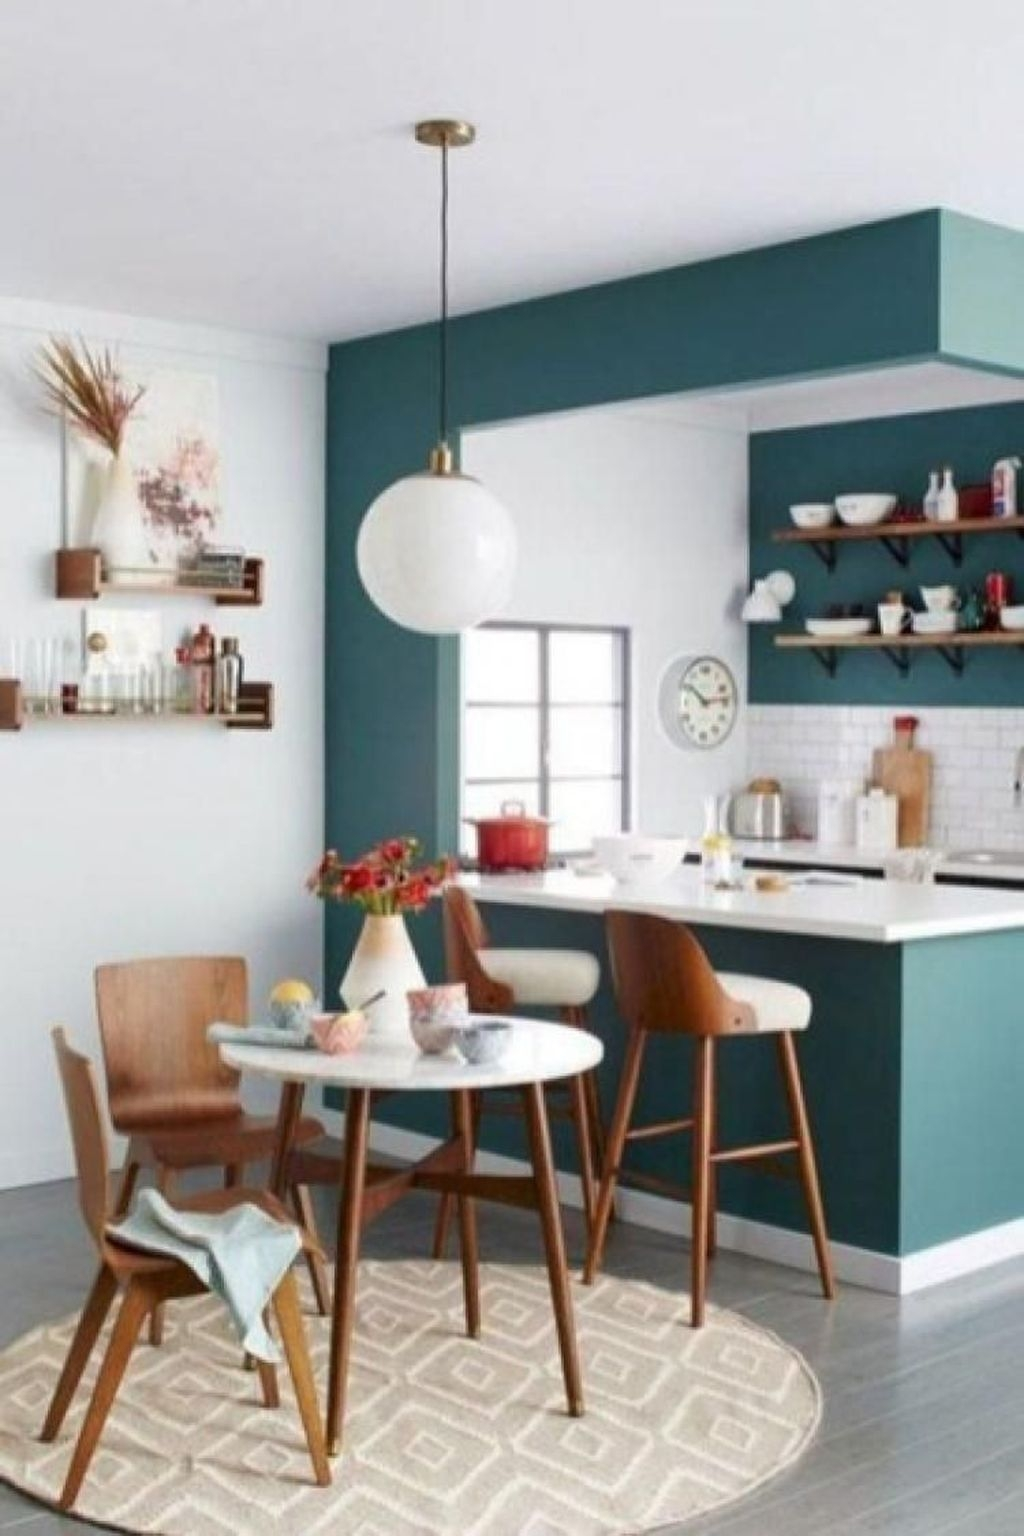 Cool Small Apartment Kitchen Ideas14